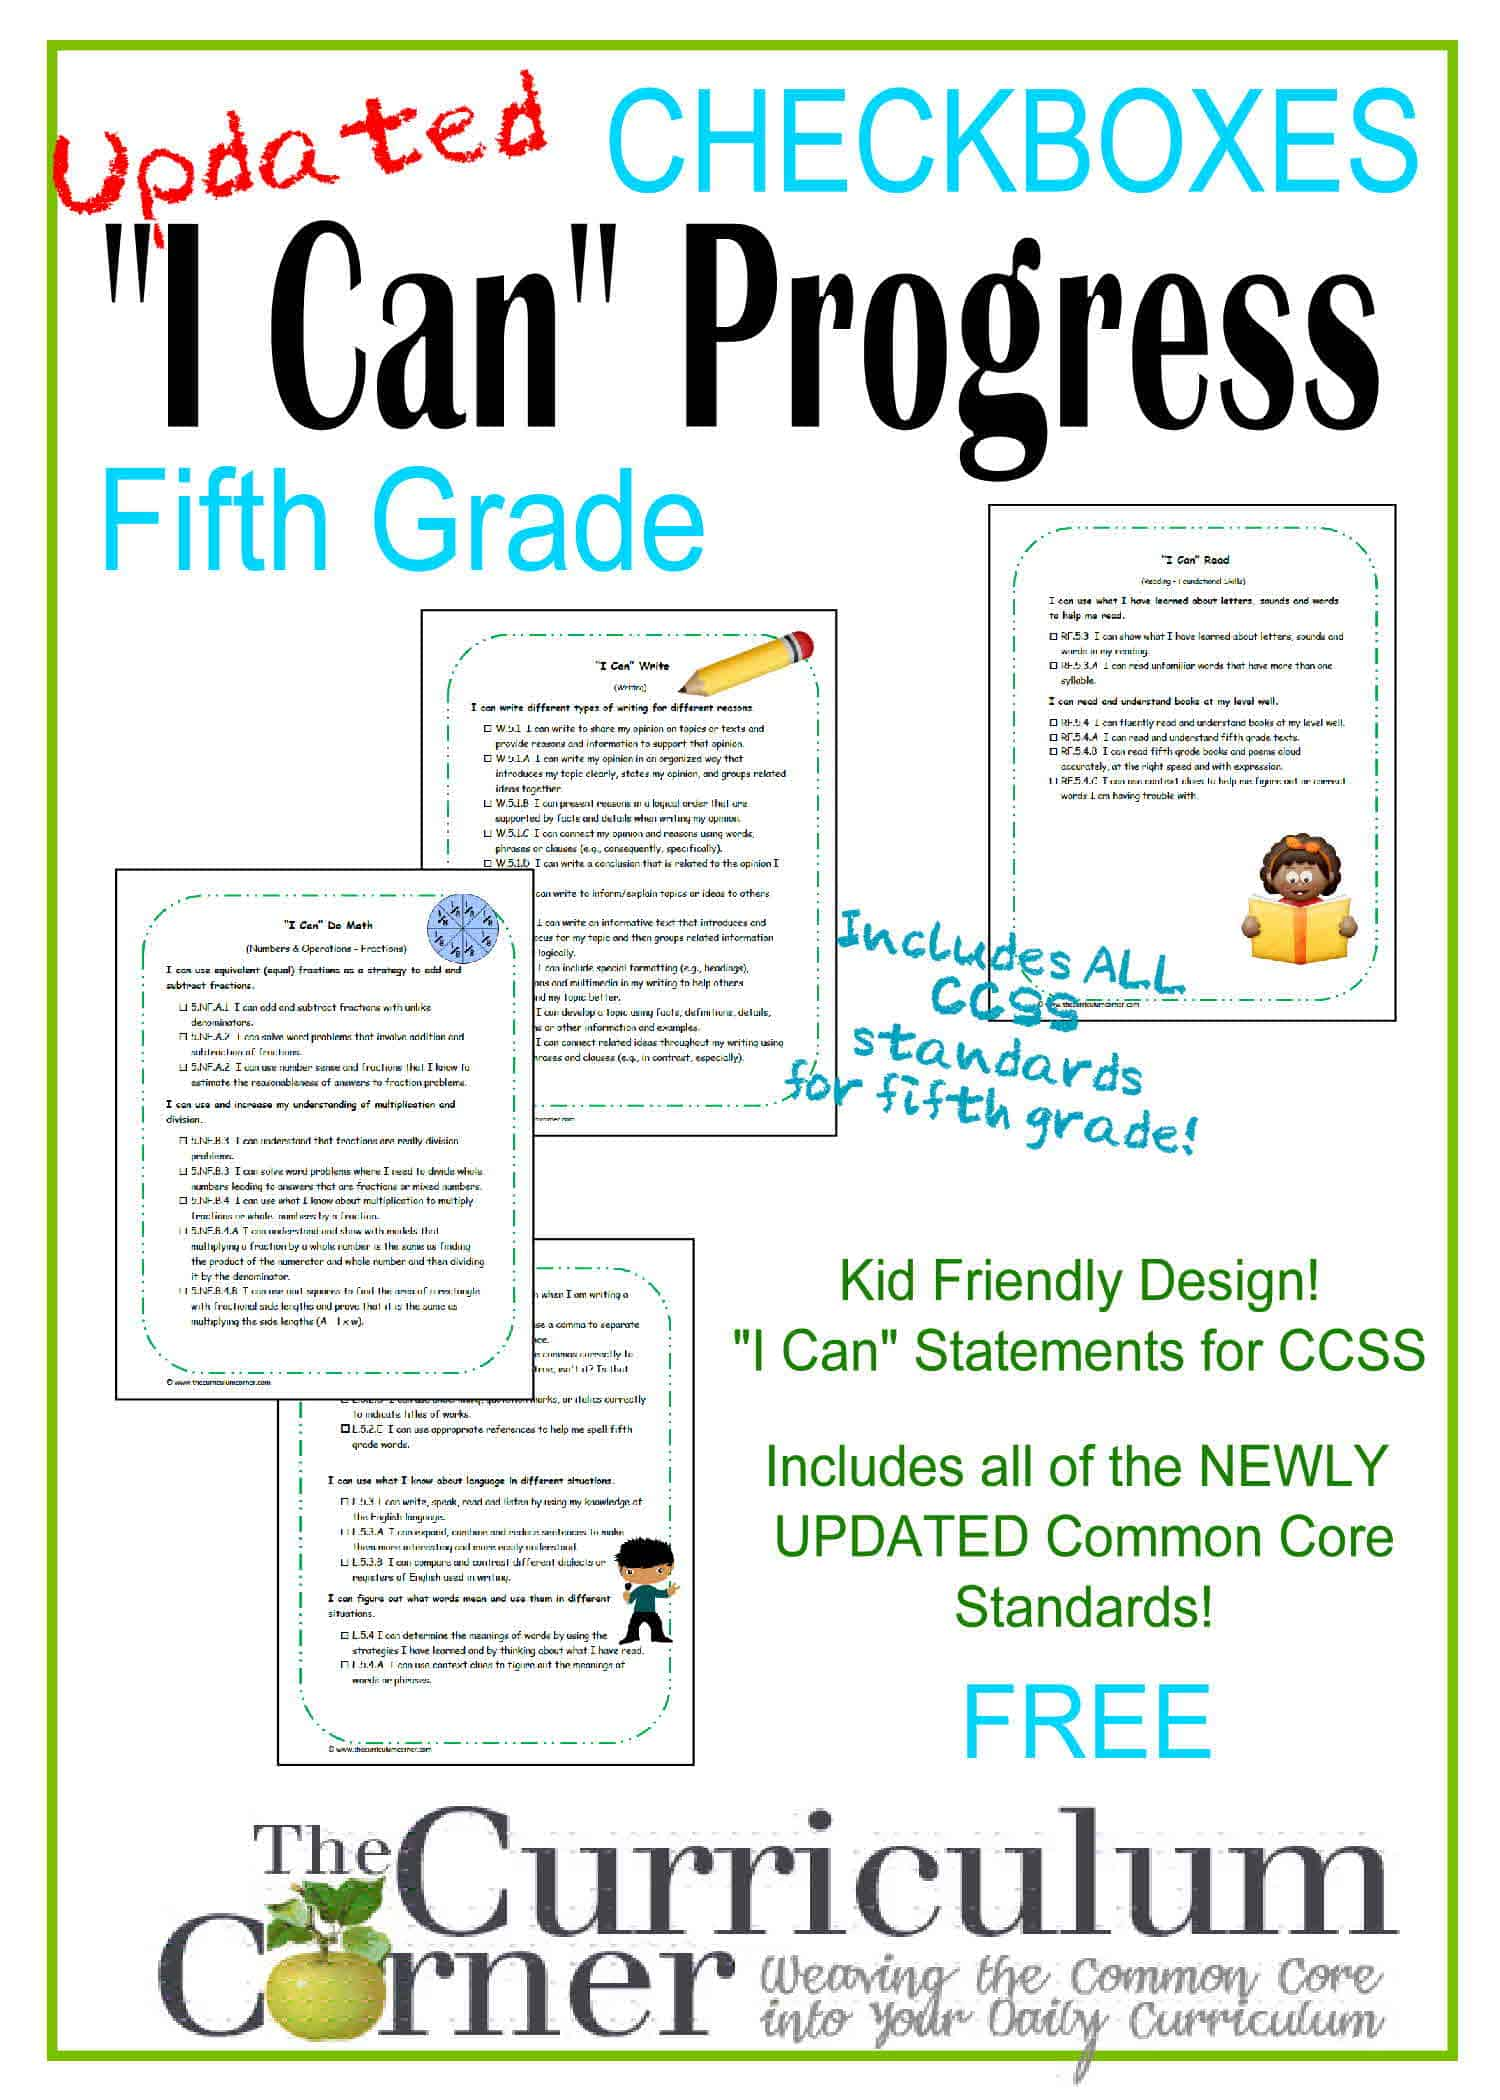 Kid Clip Art I Can Statements 5th Grade Ccss Checkboxes